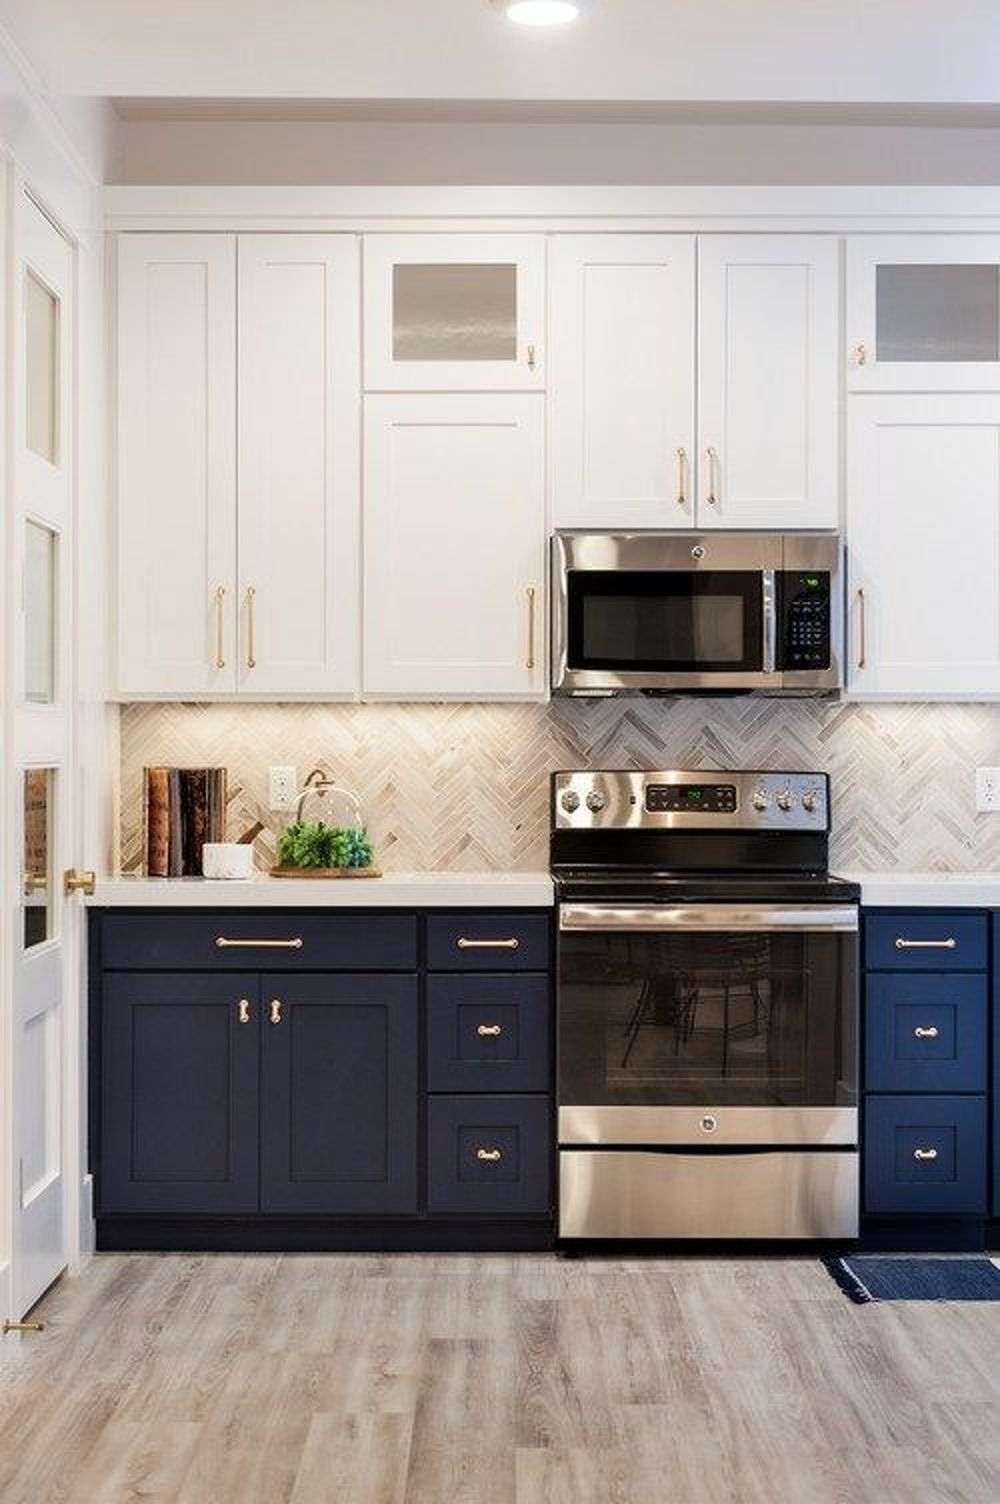 Pros And Cons Of Stainless Steel Backsplash Kitchen Decor Tips In 2020 New Kitchen Cabinets Kitchen Cabinets Decor Kitchen Cabinet Trends